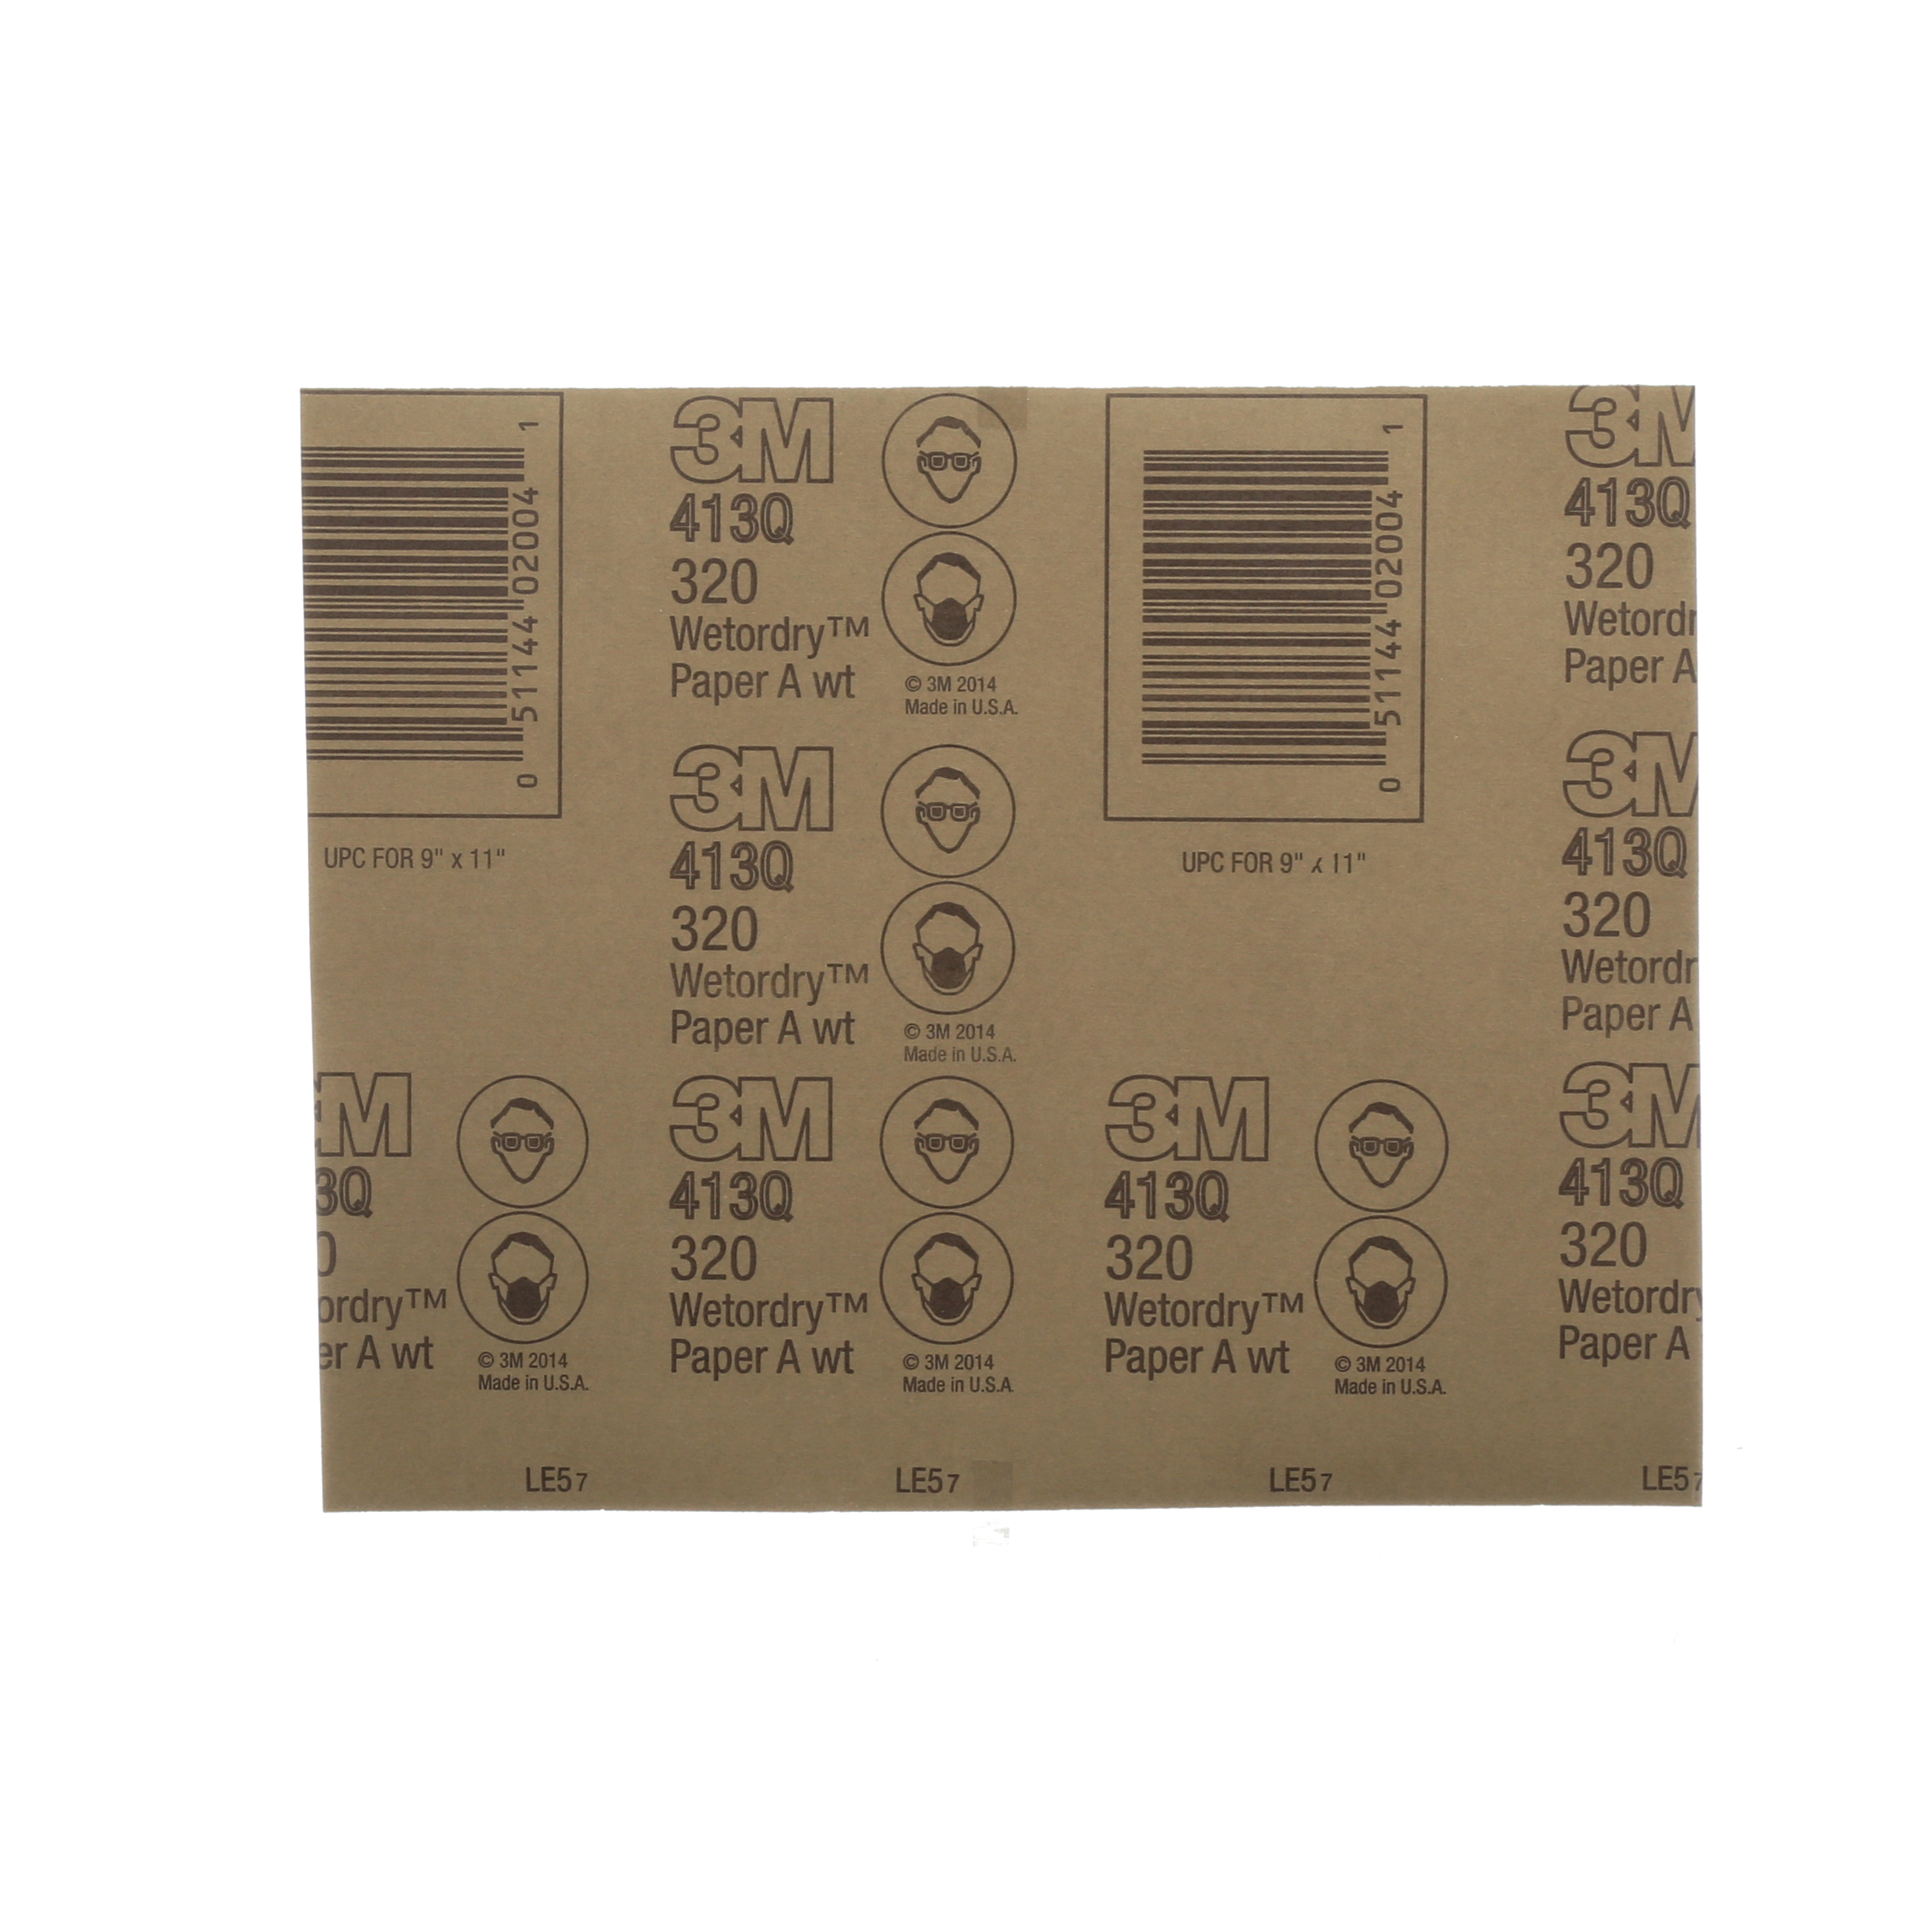 3M™ Wetordry™ 051144-10713 Coated Abrasive Sheet, 9 in L x 3-2/3 in W, 400 Grit, Super Fine Grade, Silicon Carbide Abrasive, Paper Backing